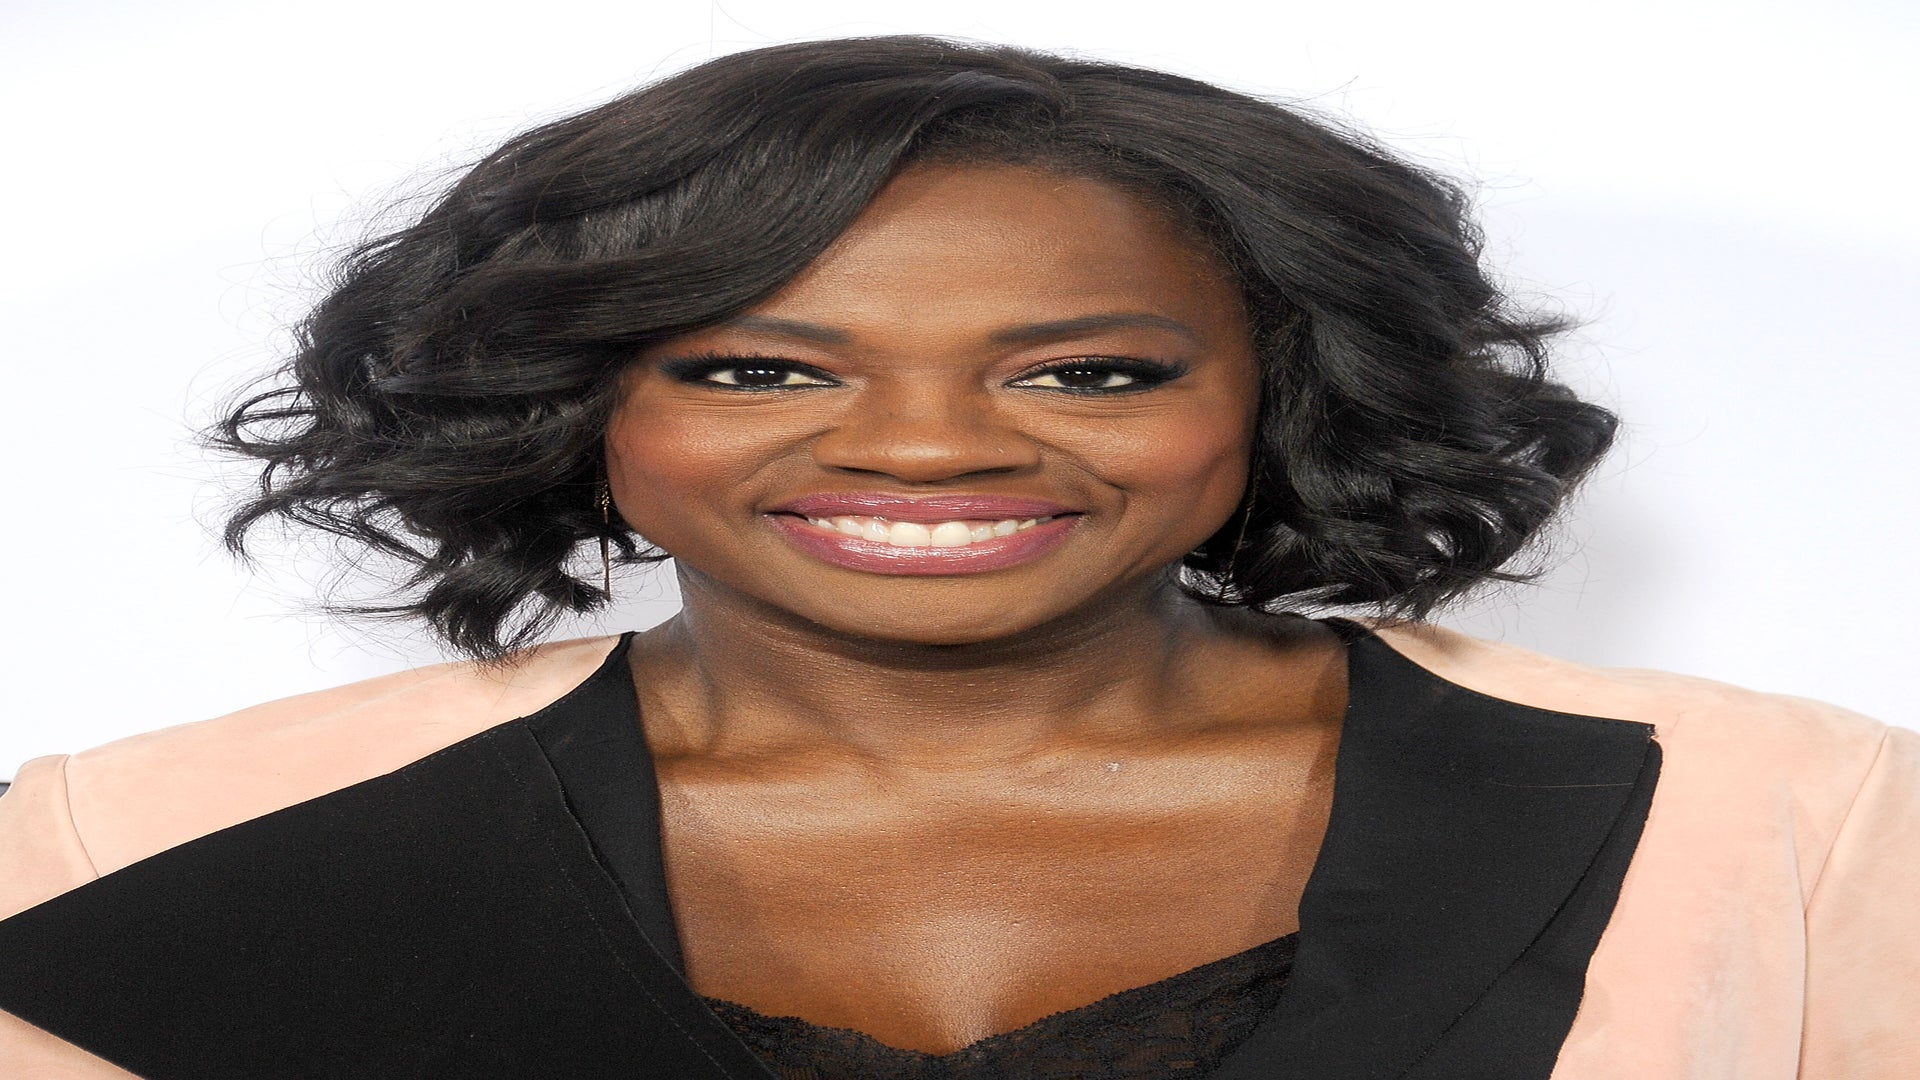 Viola Davis Admits Some Roles Kept Her Up At Night, She Wasn't Proud Of Them